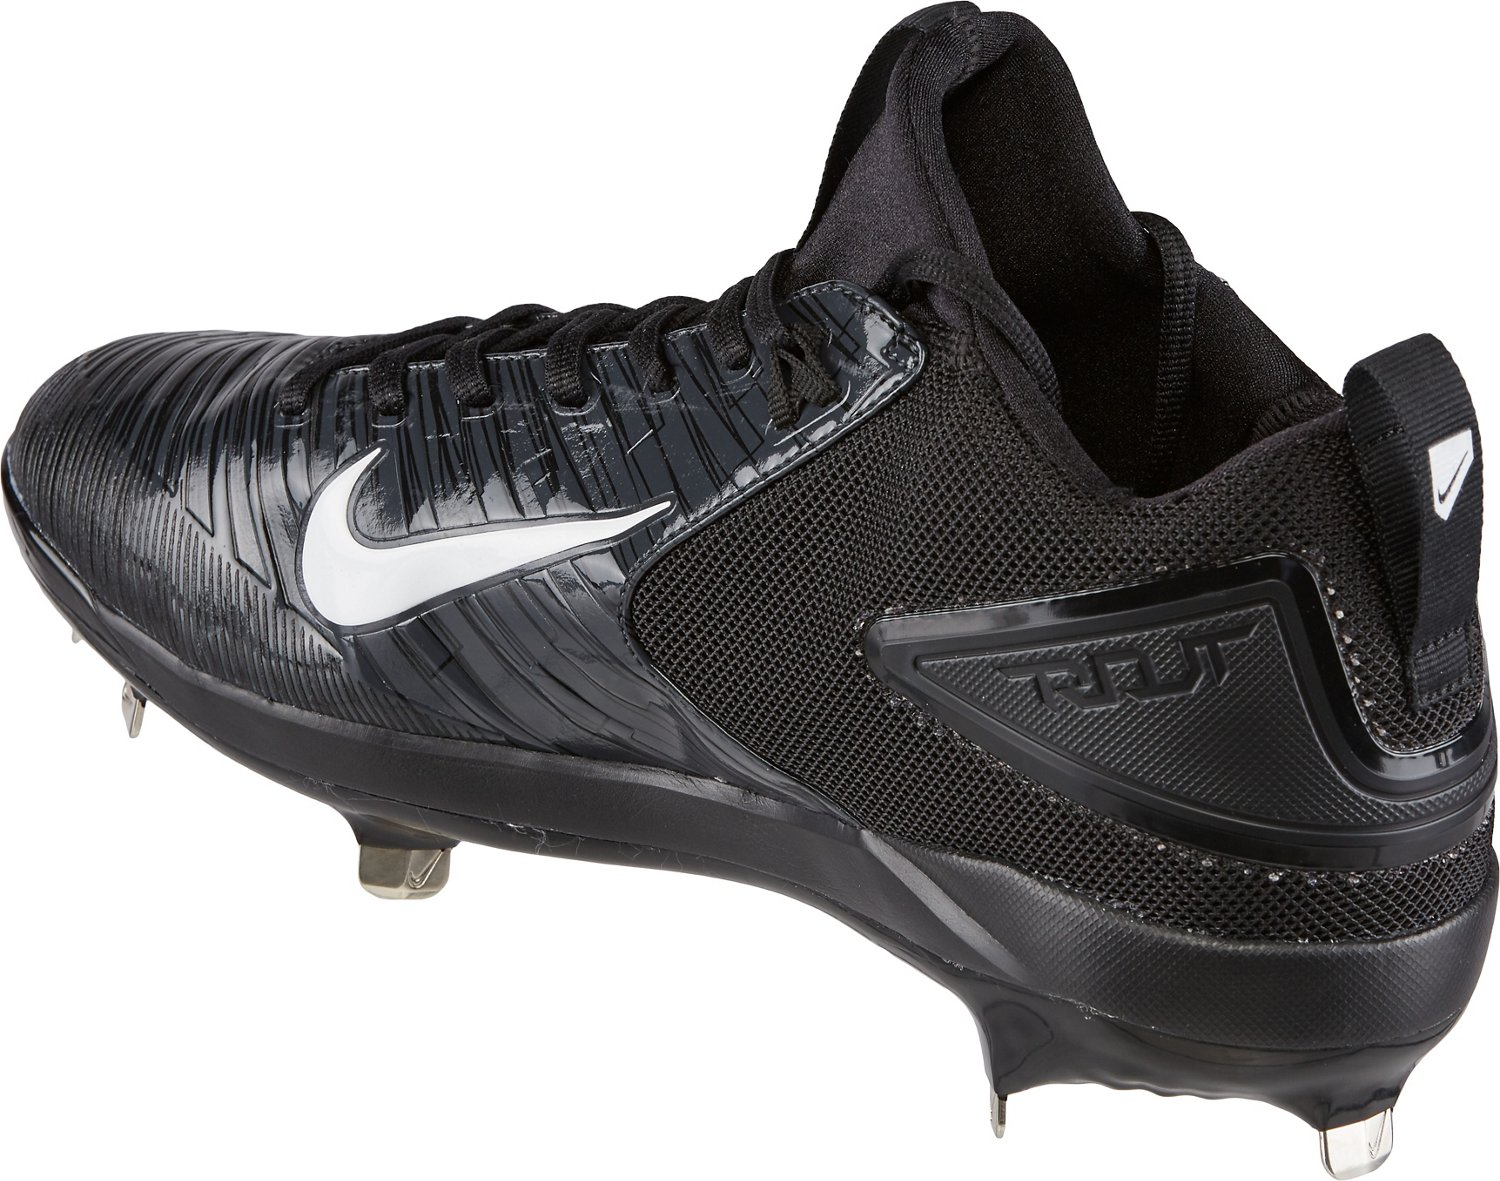 Nike Men's Trout 3 Pro Baseball Cleats - view number 1